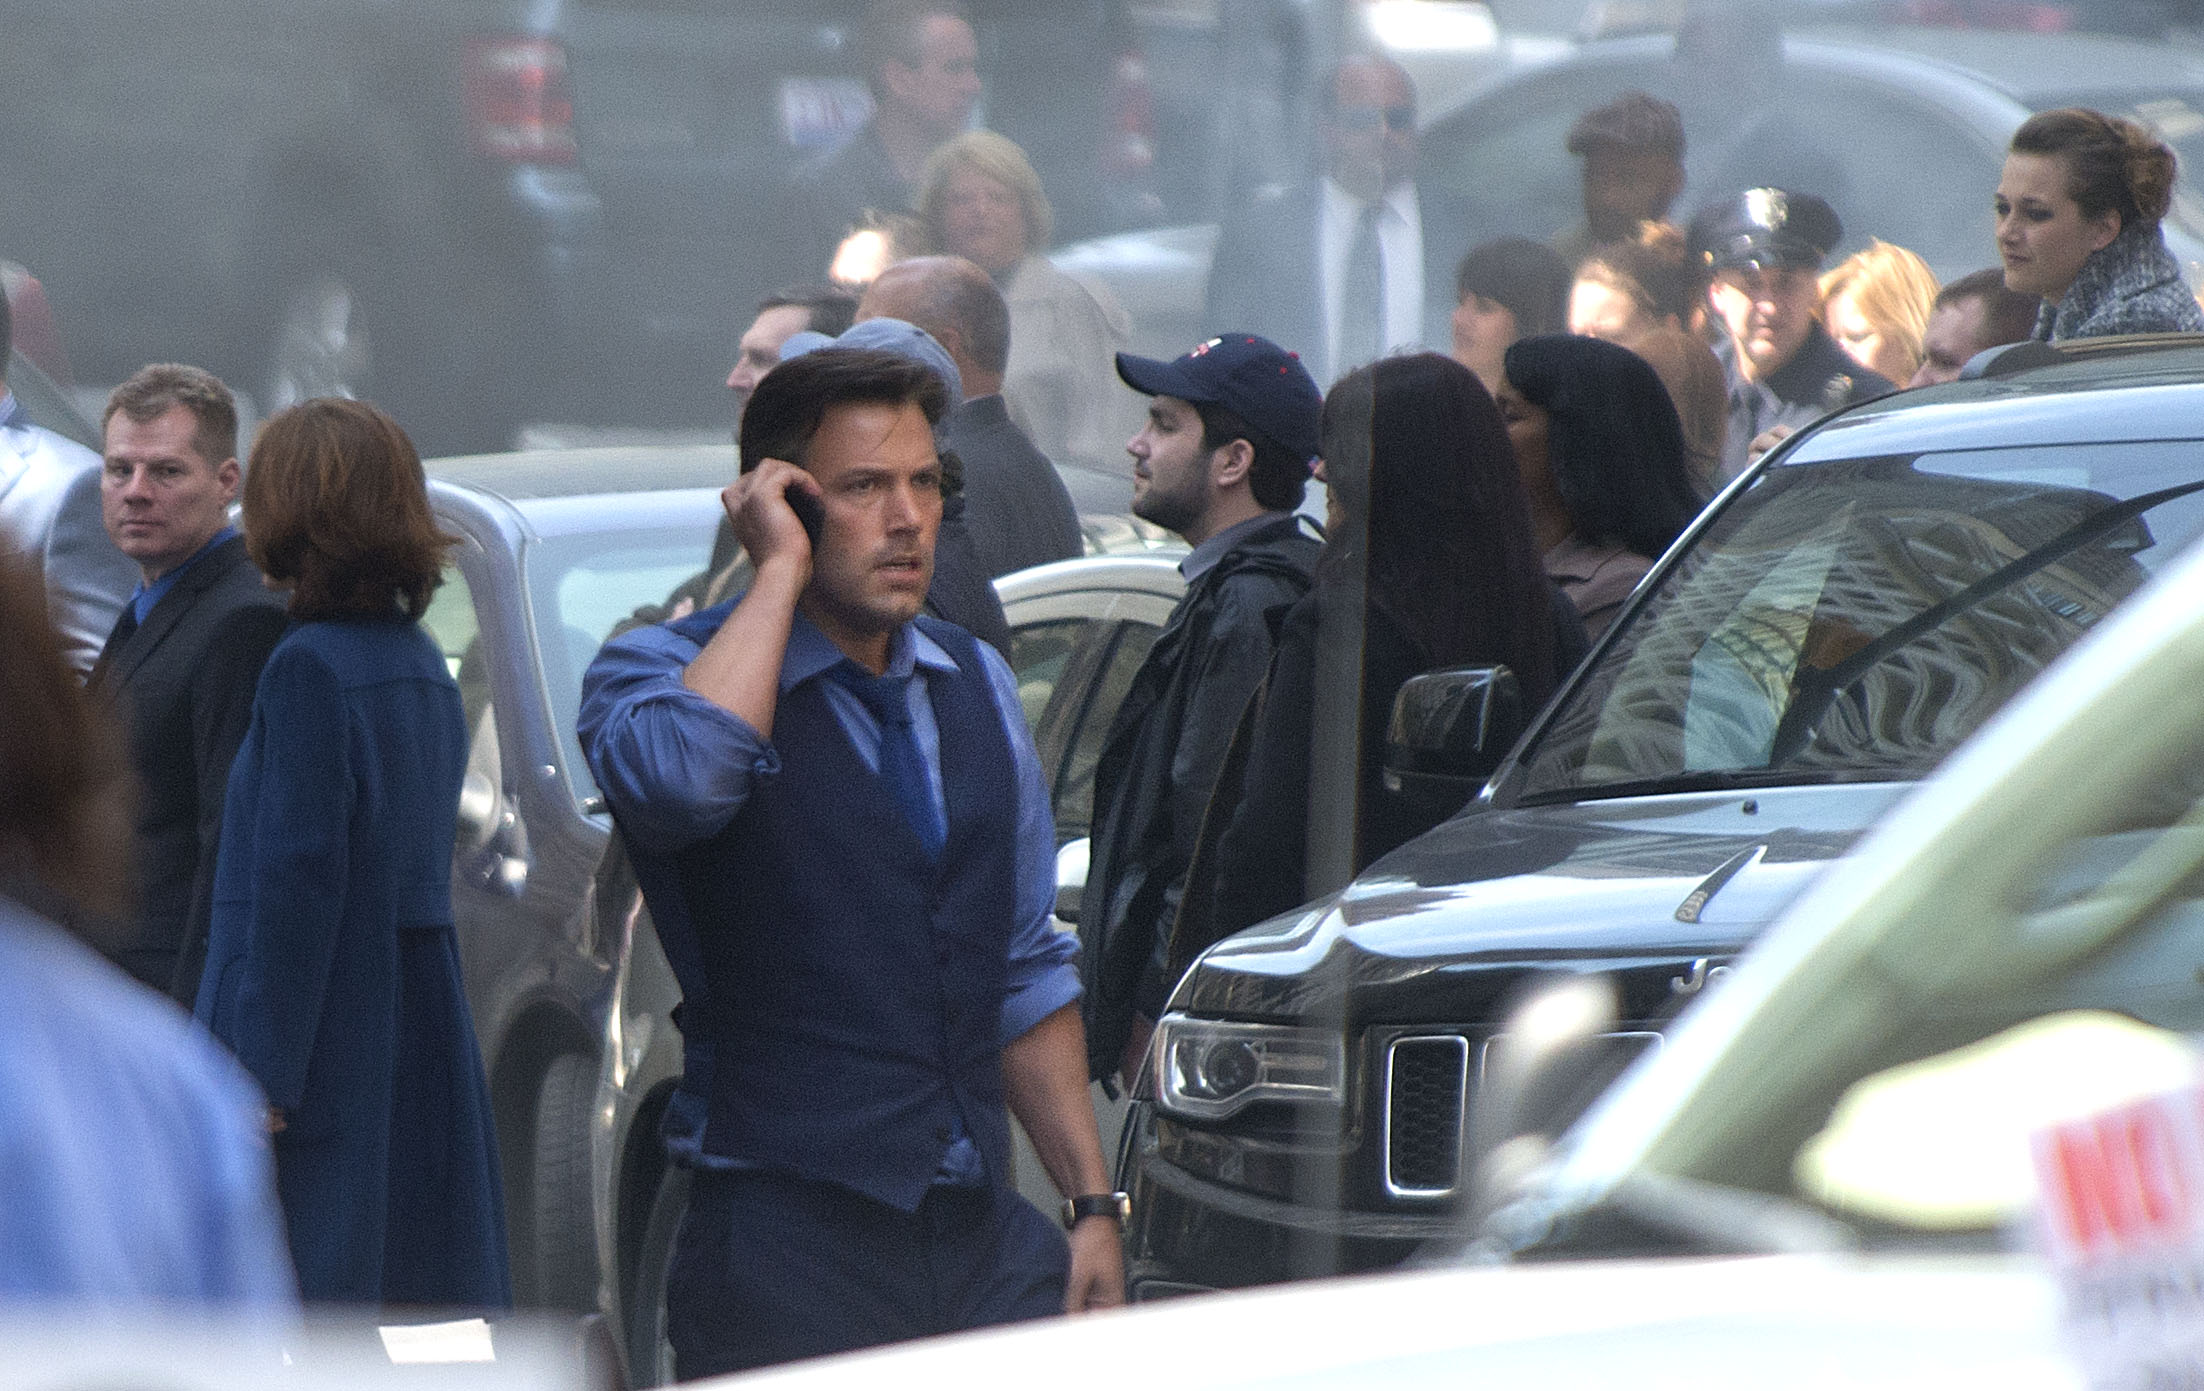 Ben Affleck films a scene from Batman v Superman: Dawn of Justice in the streets of downtown Detroit.